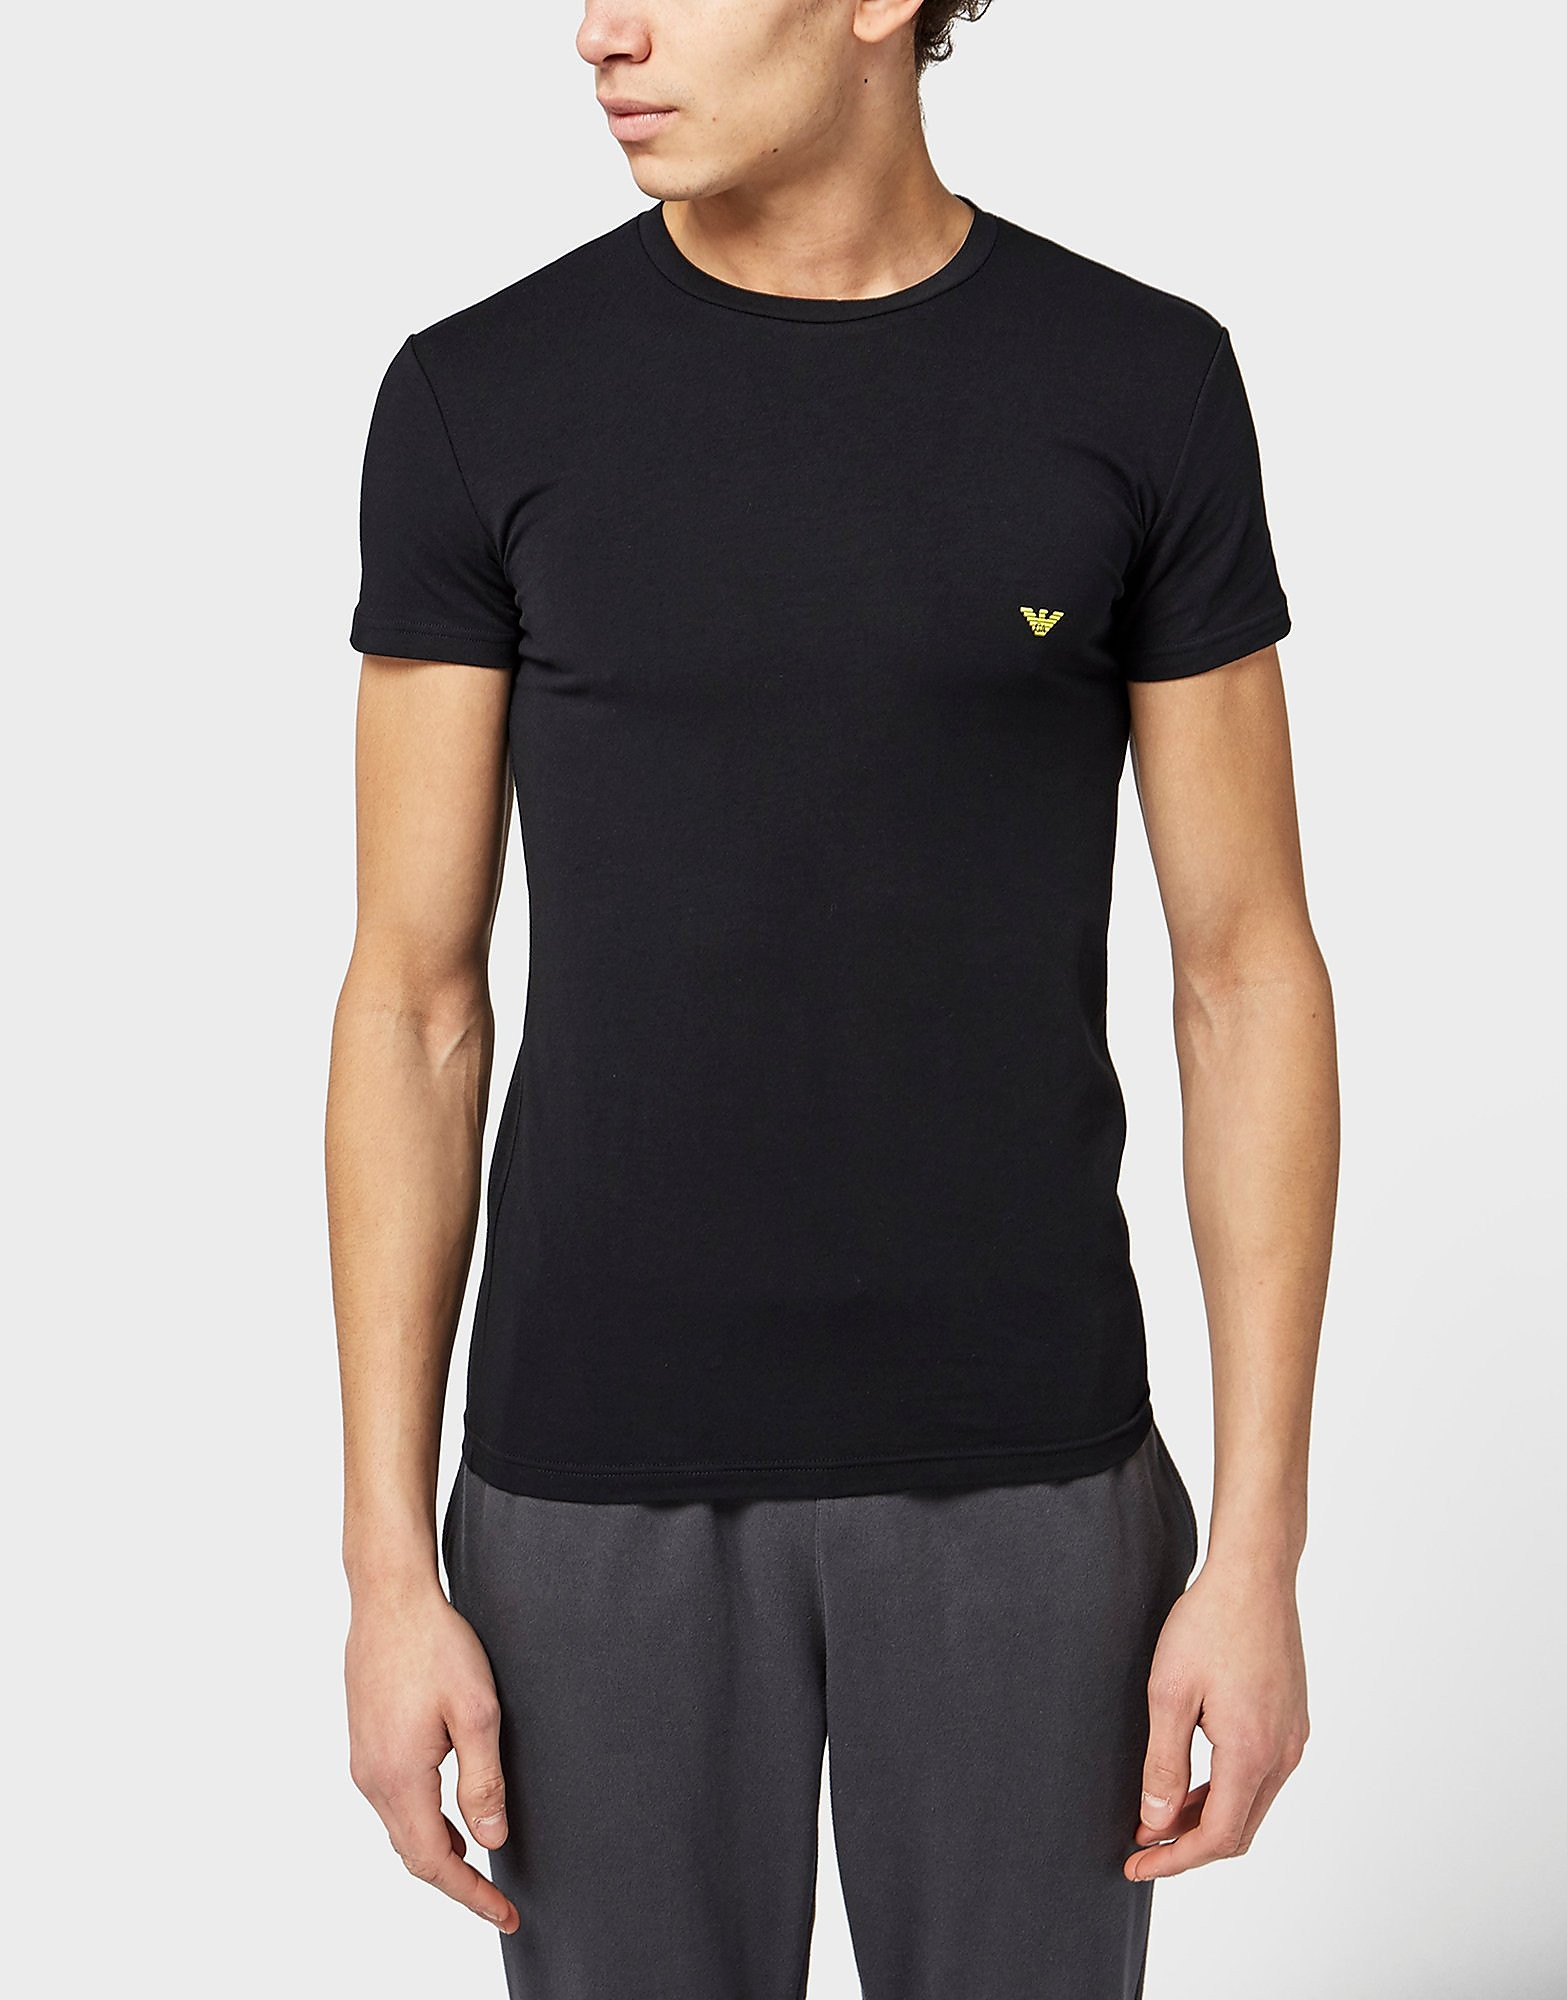 Emporio Armani Eagle Crew Short Sleeve T-Shirt